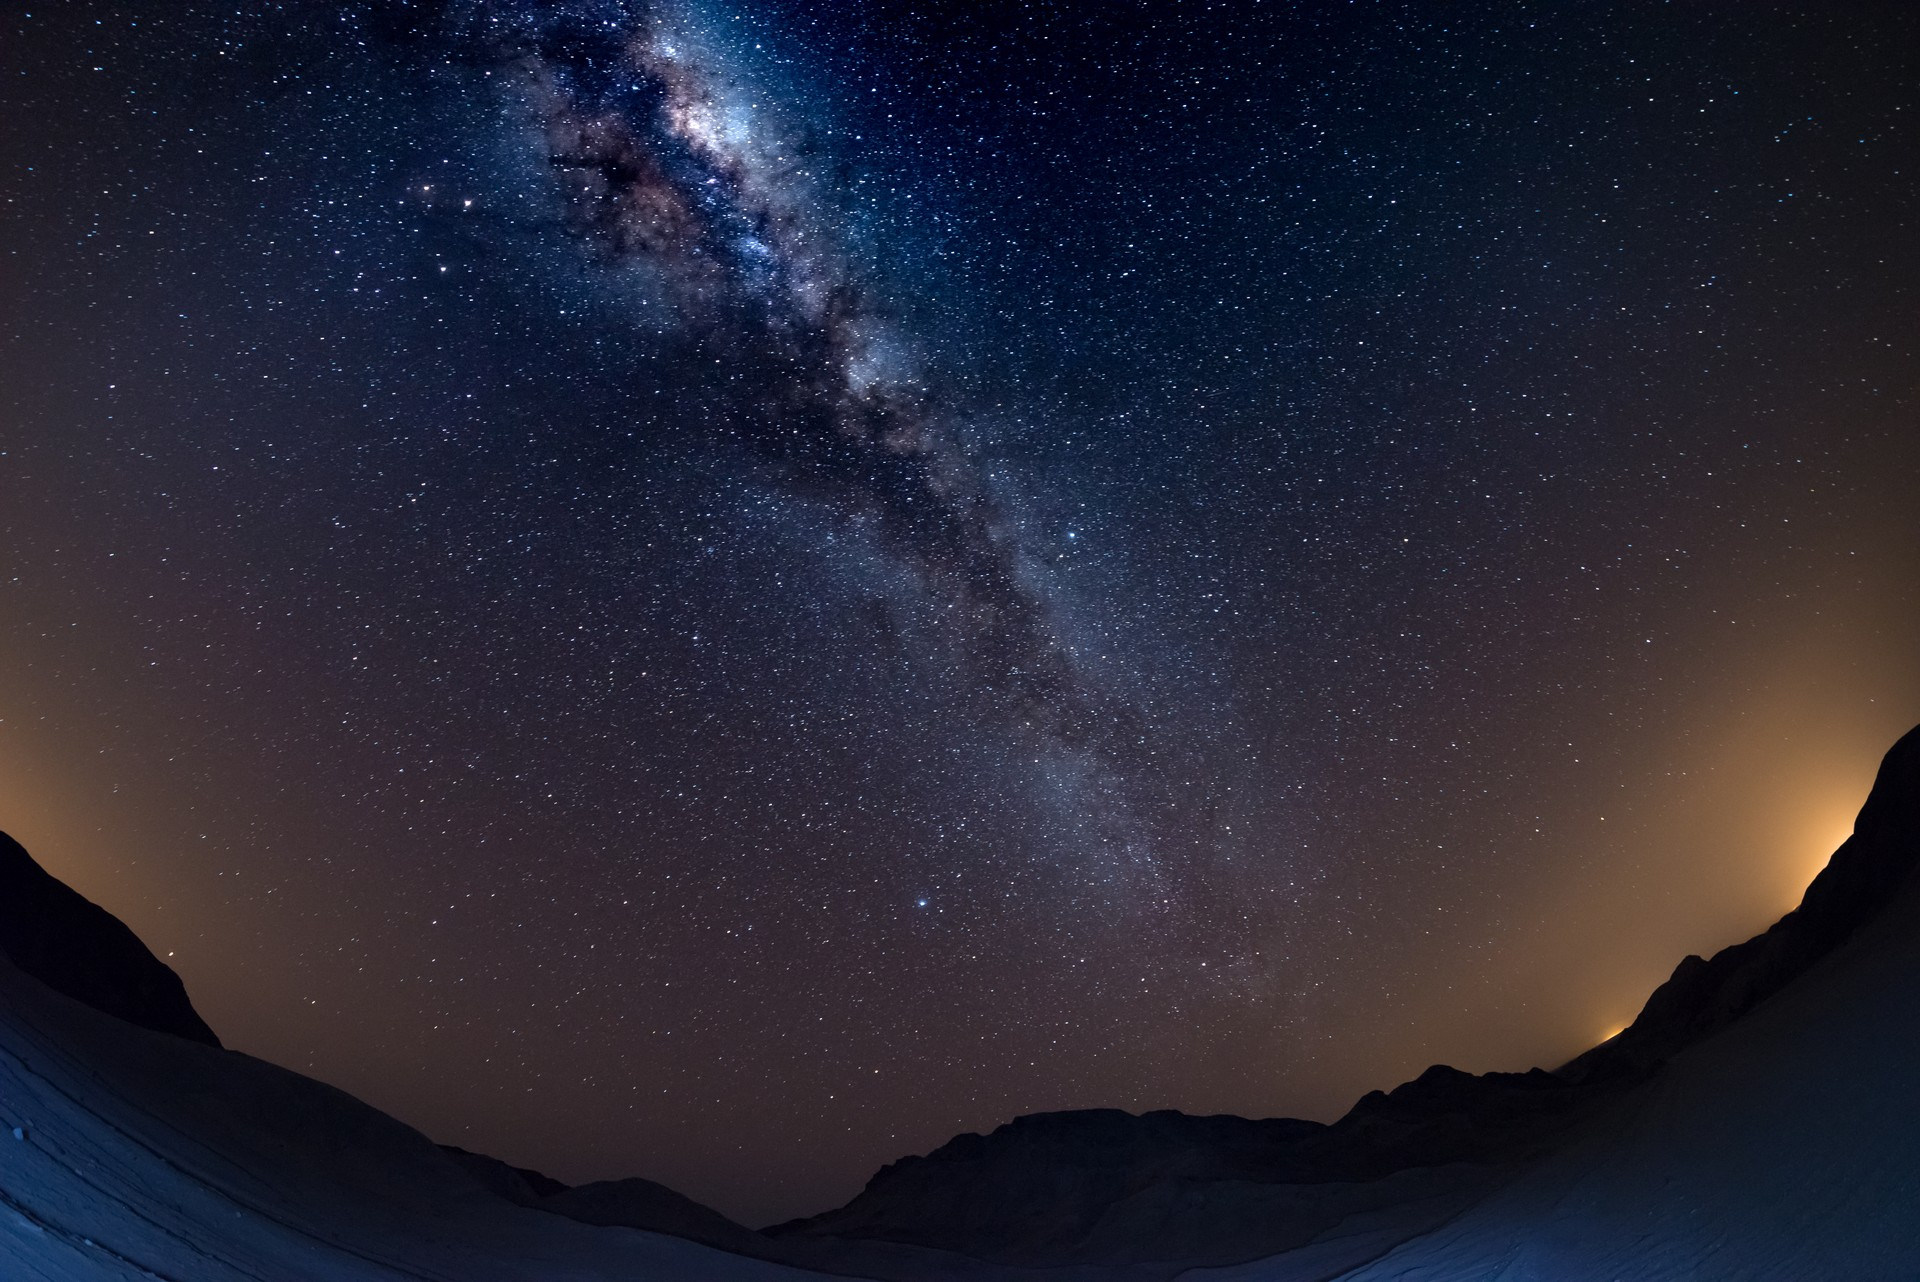 The Milky Way seen from the NamibRand Nature Reserve, Namibia